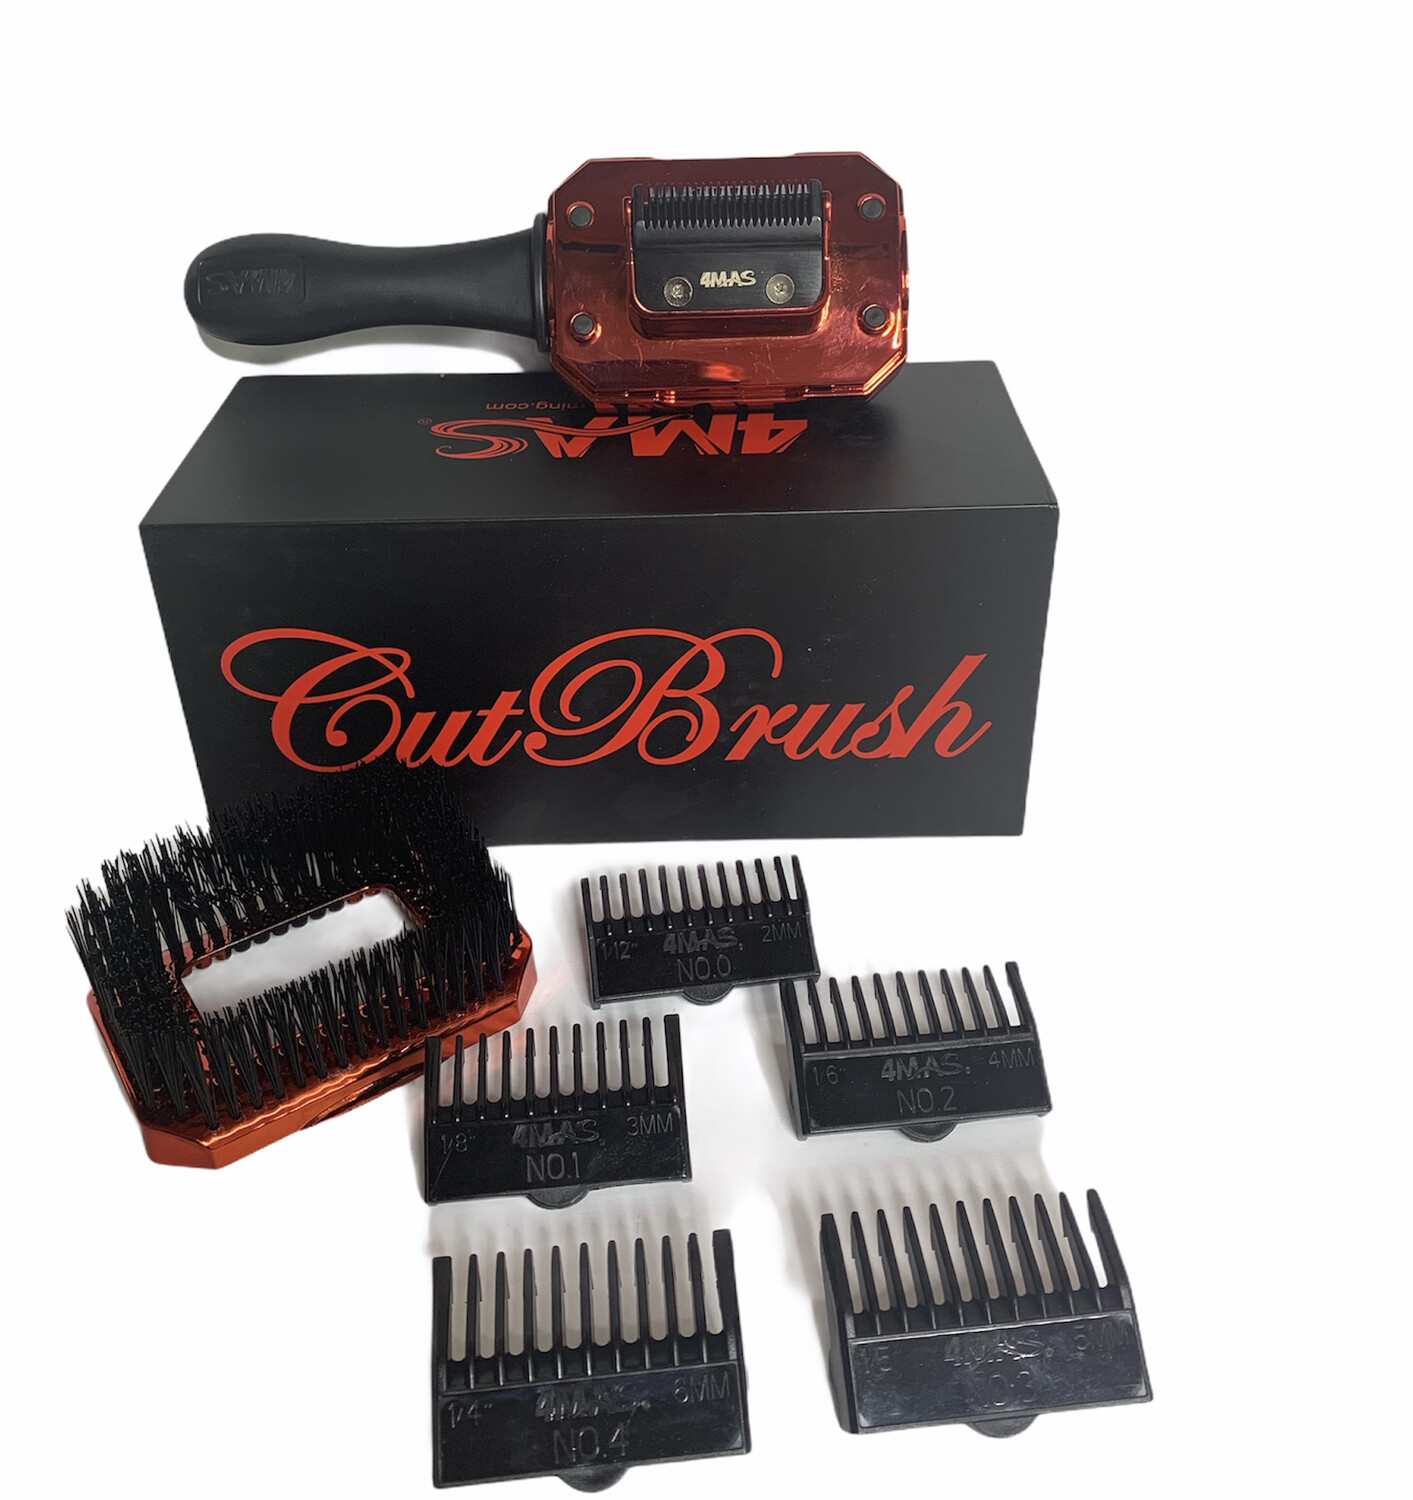 4MAS CutBrush (Black and Red) Model 2